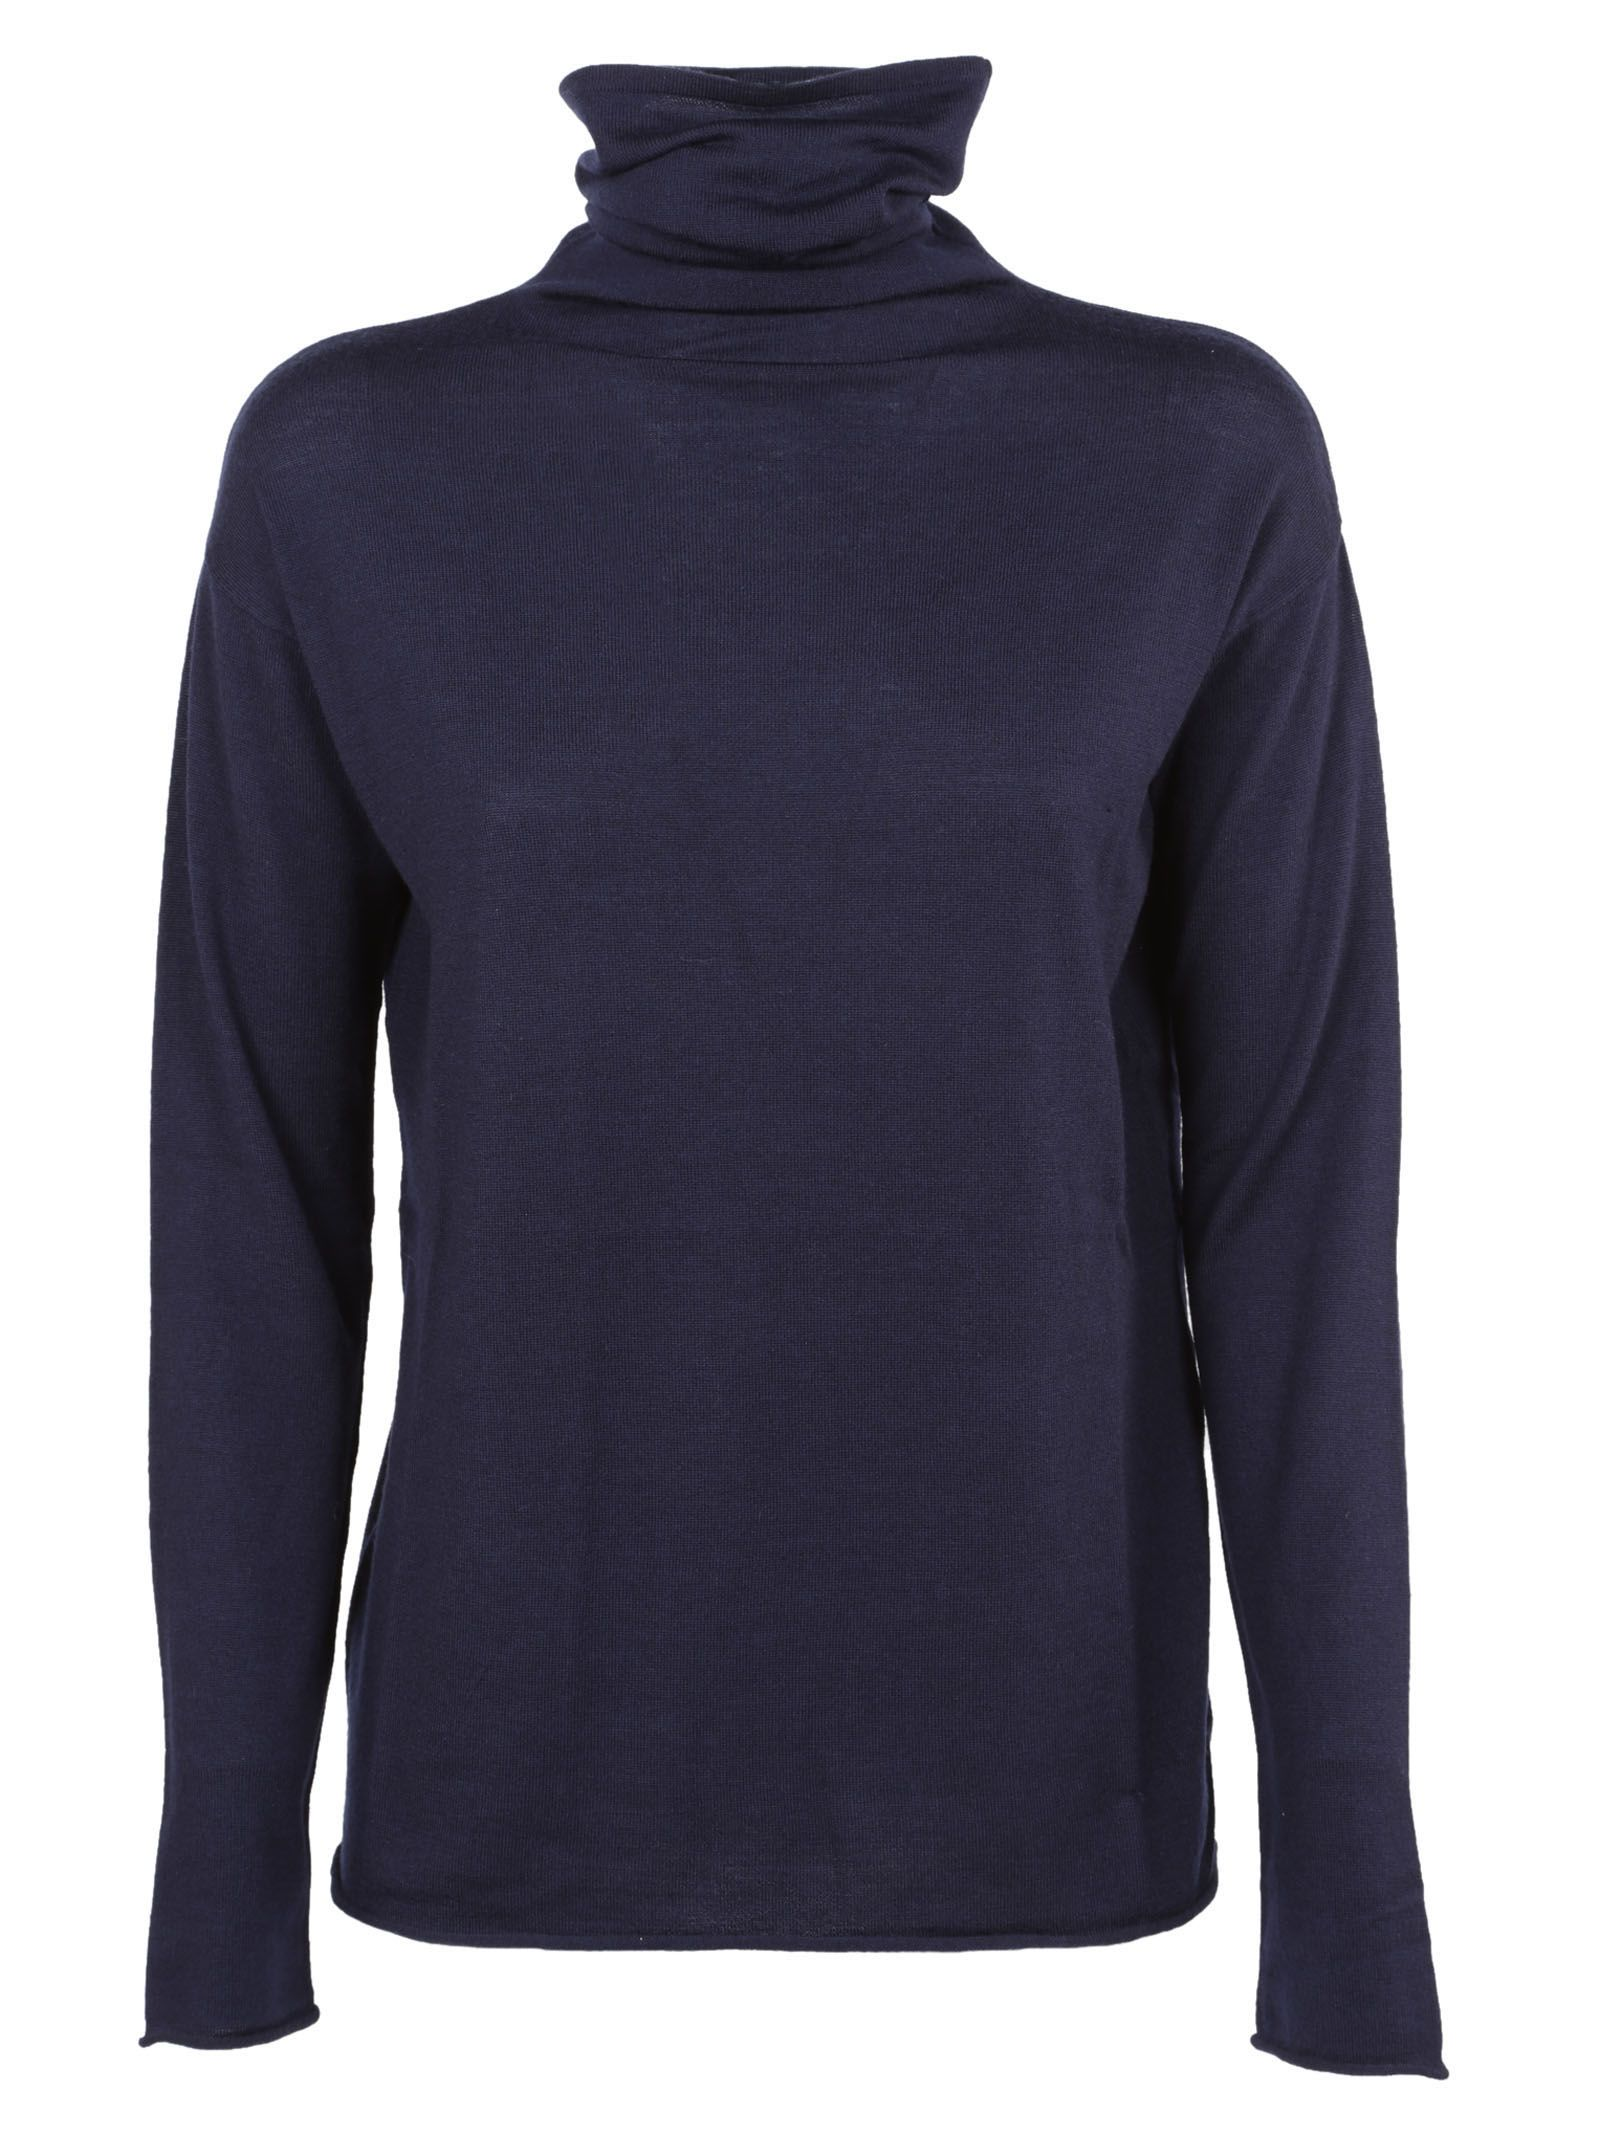 Aspesi Plain Sweater